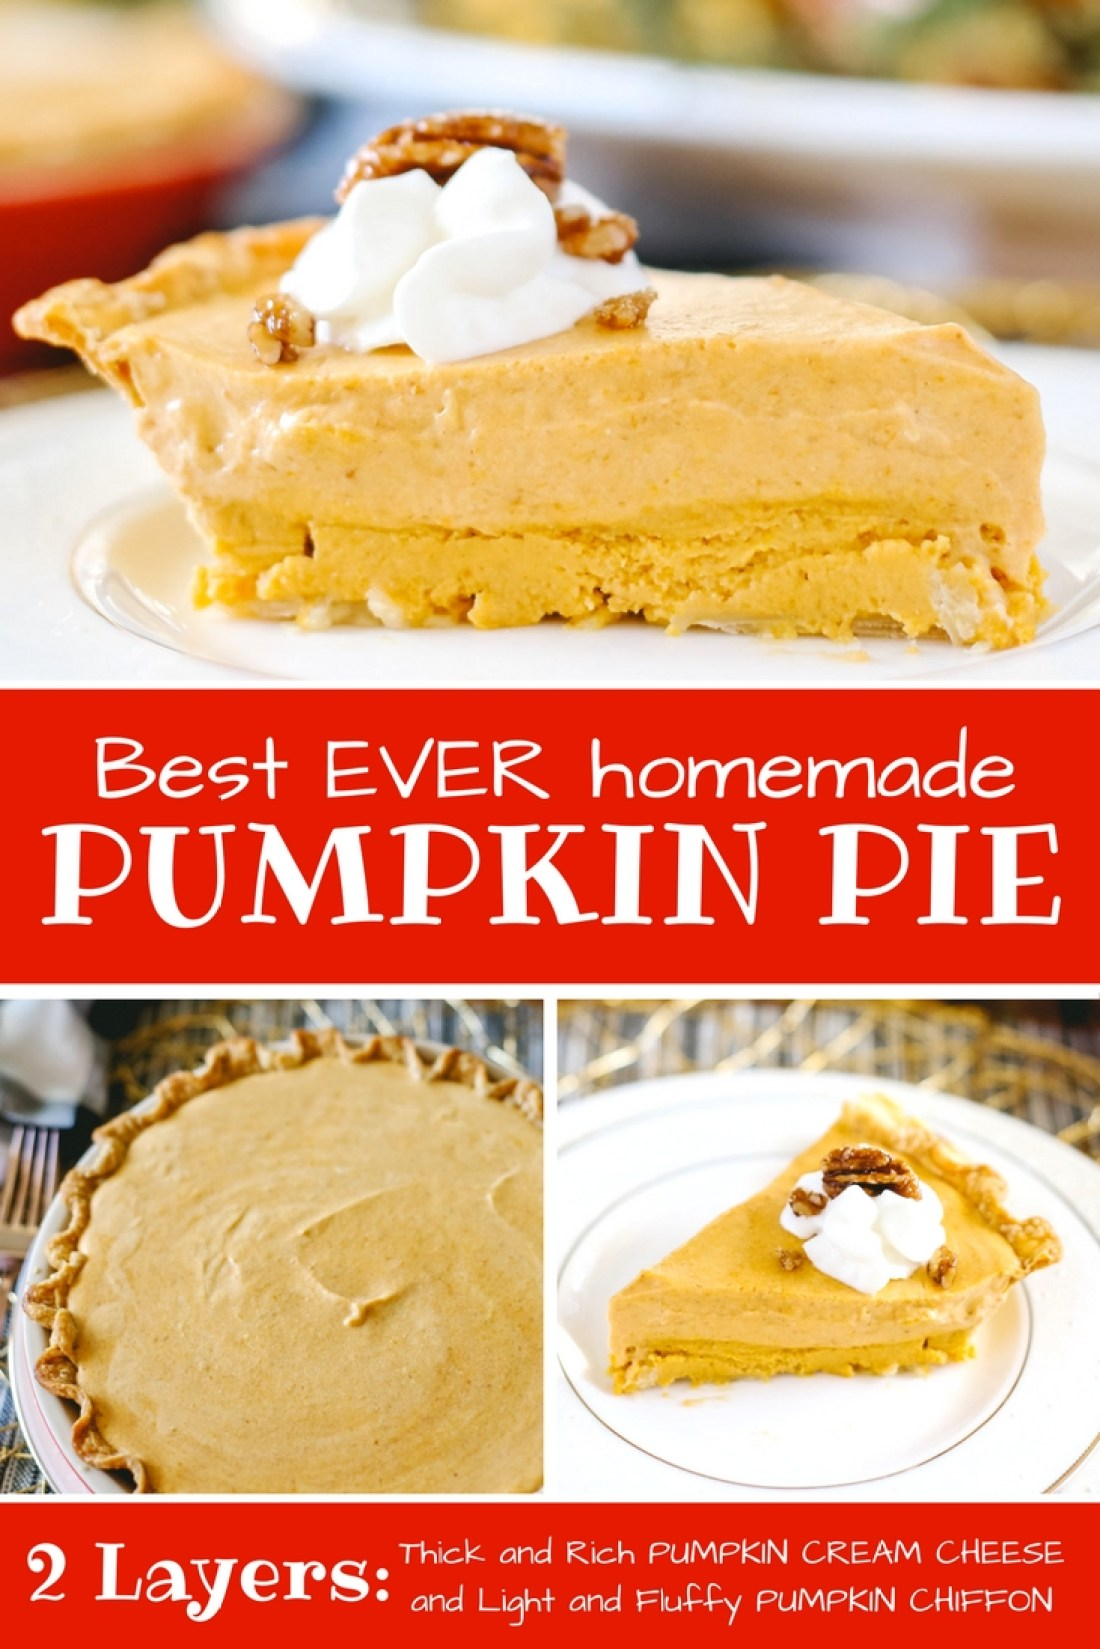 Most incredible Pumpkin Chiffon Pie recipe ever! With a rich cream cheese layer and a fluffy chiffon layer... YUMMMM!